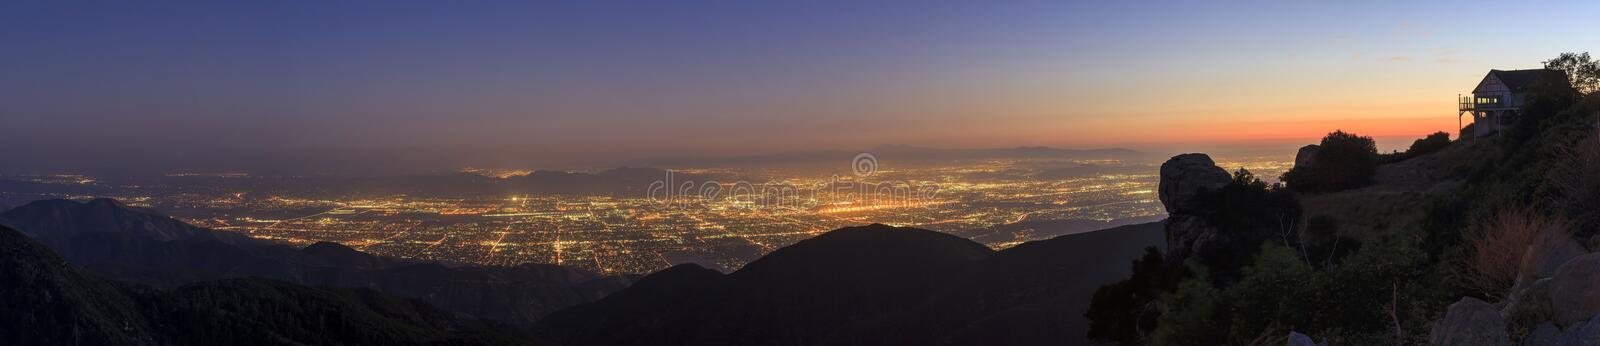 San Bernardino no tempo do por do sol imagem de stock royalty free